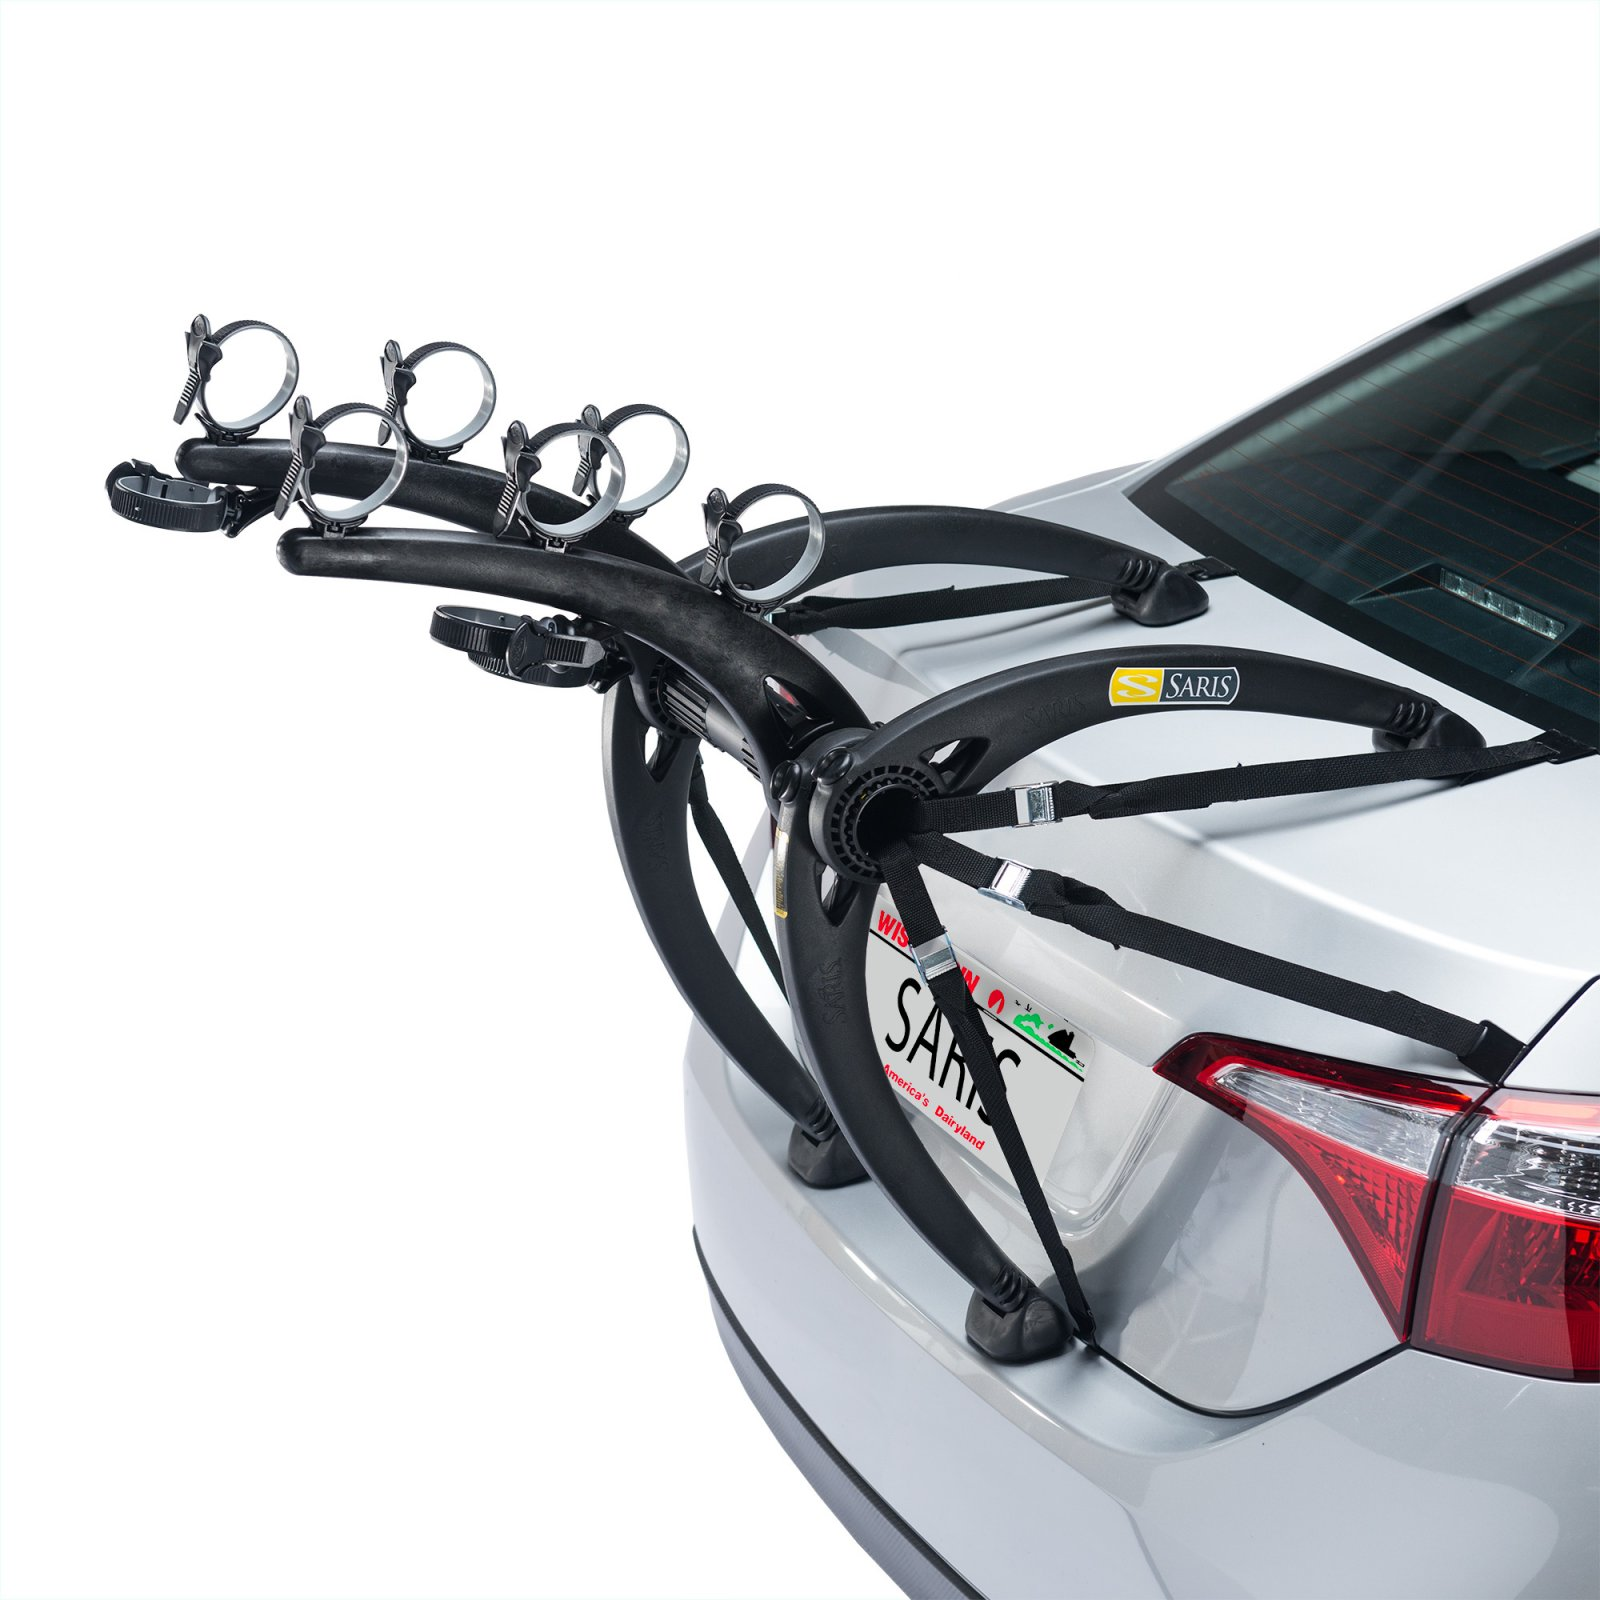 SARIS 801 BONES 3-BIKE RACK BLACK